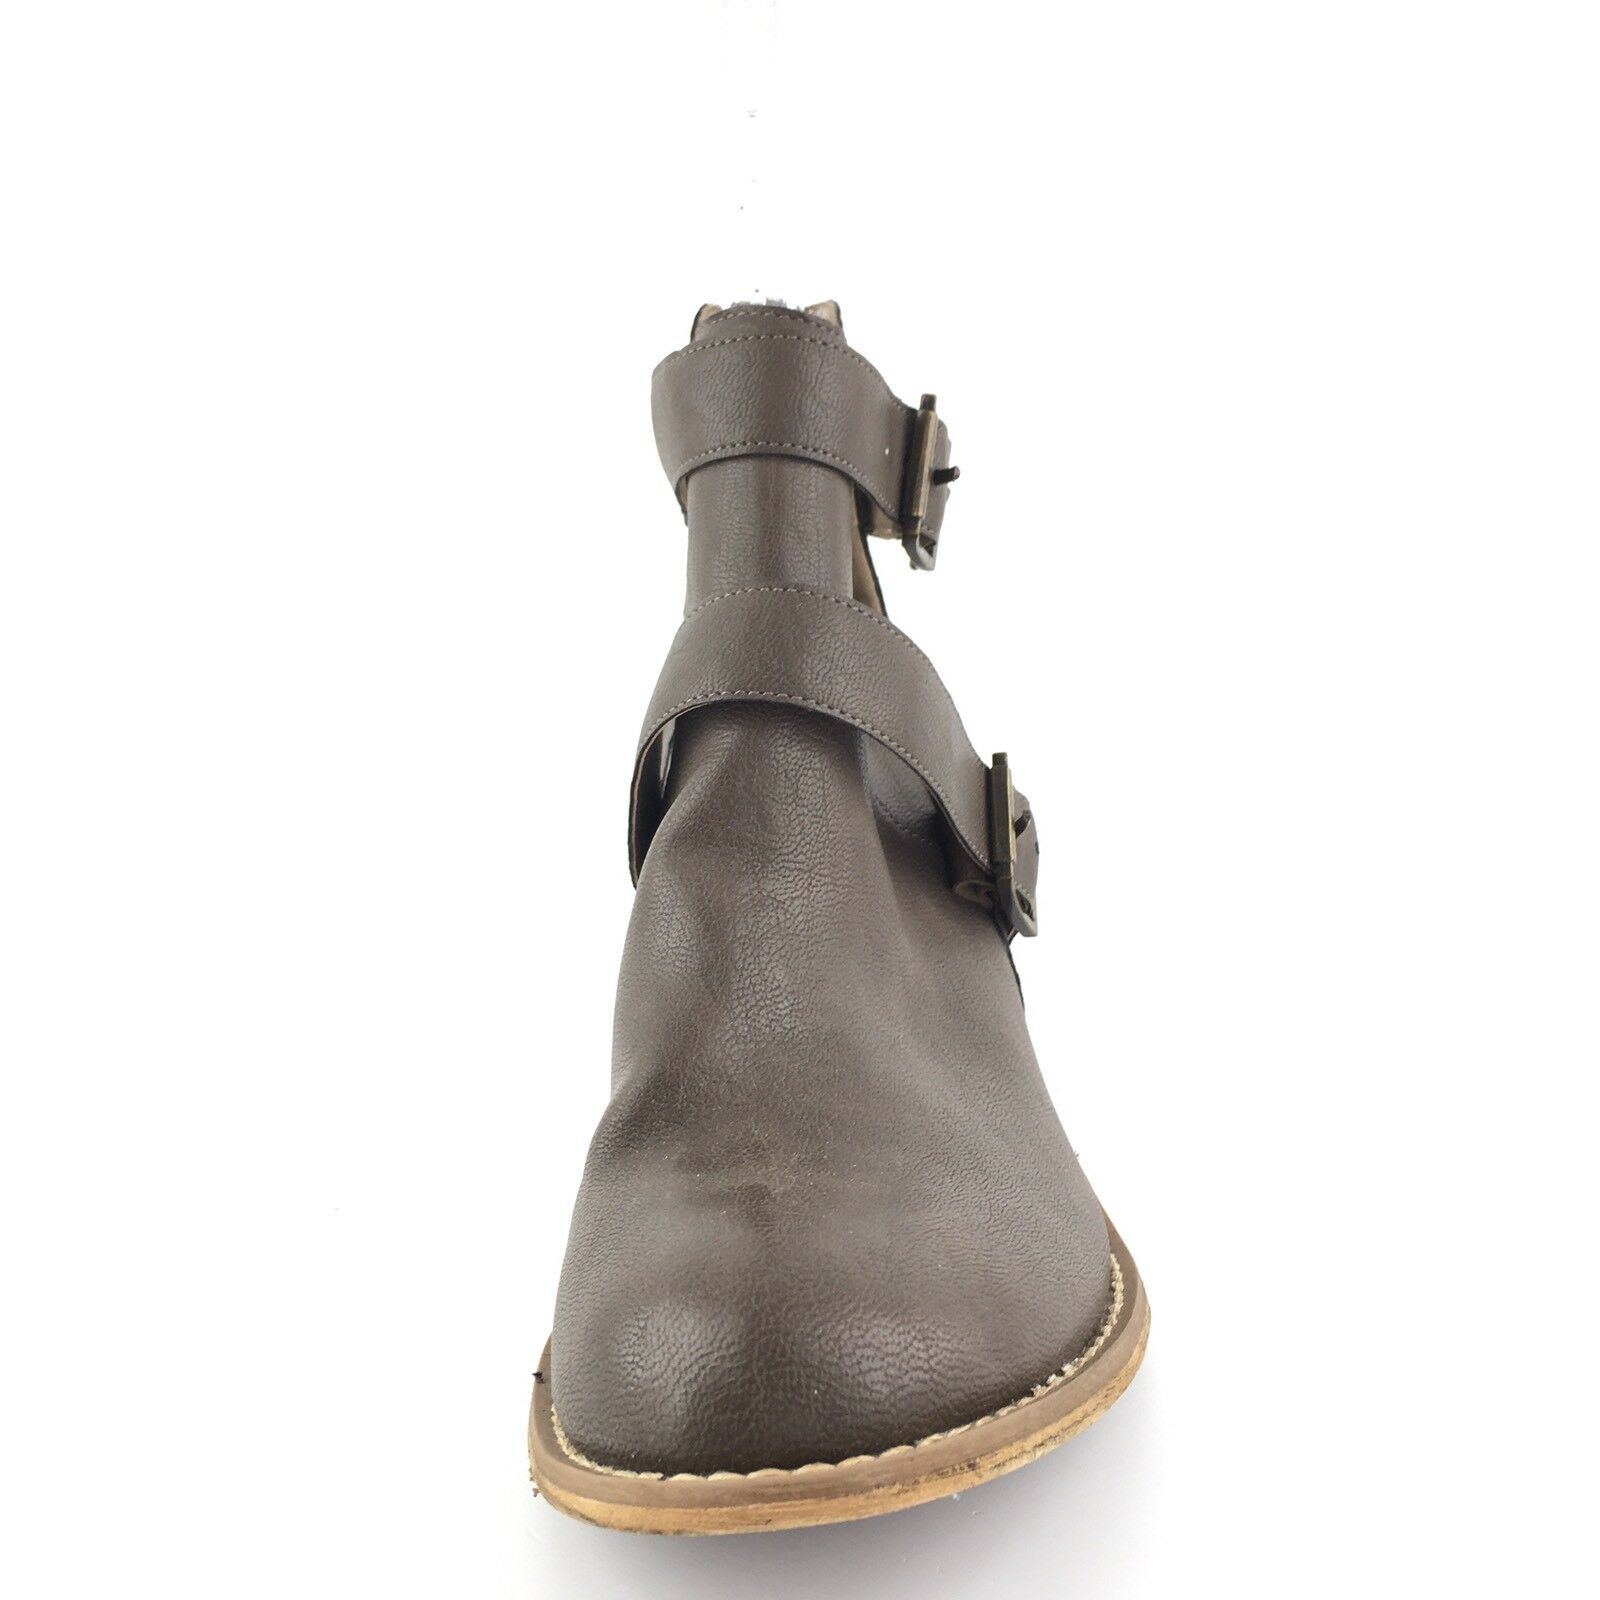 a63590671c7c6c ... Abound Pepper Rounded Gray Rounded Pepper Toe Ankle Boots Women  s Size  9 M ...